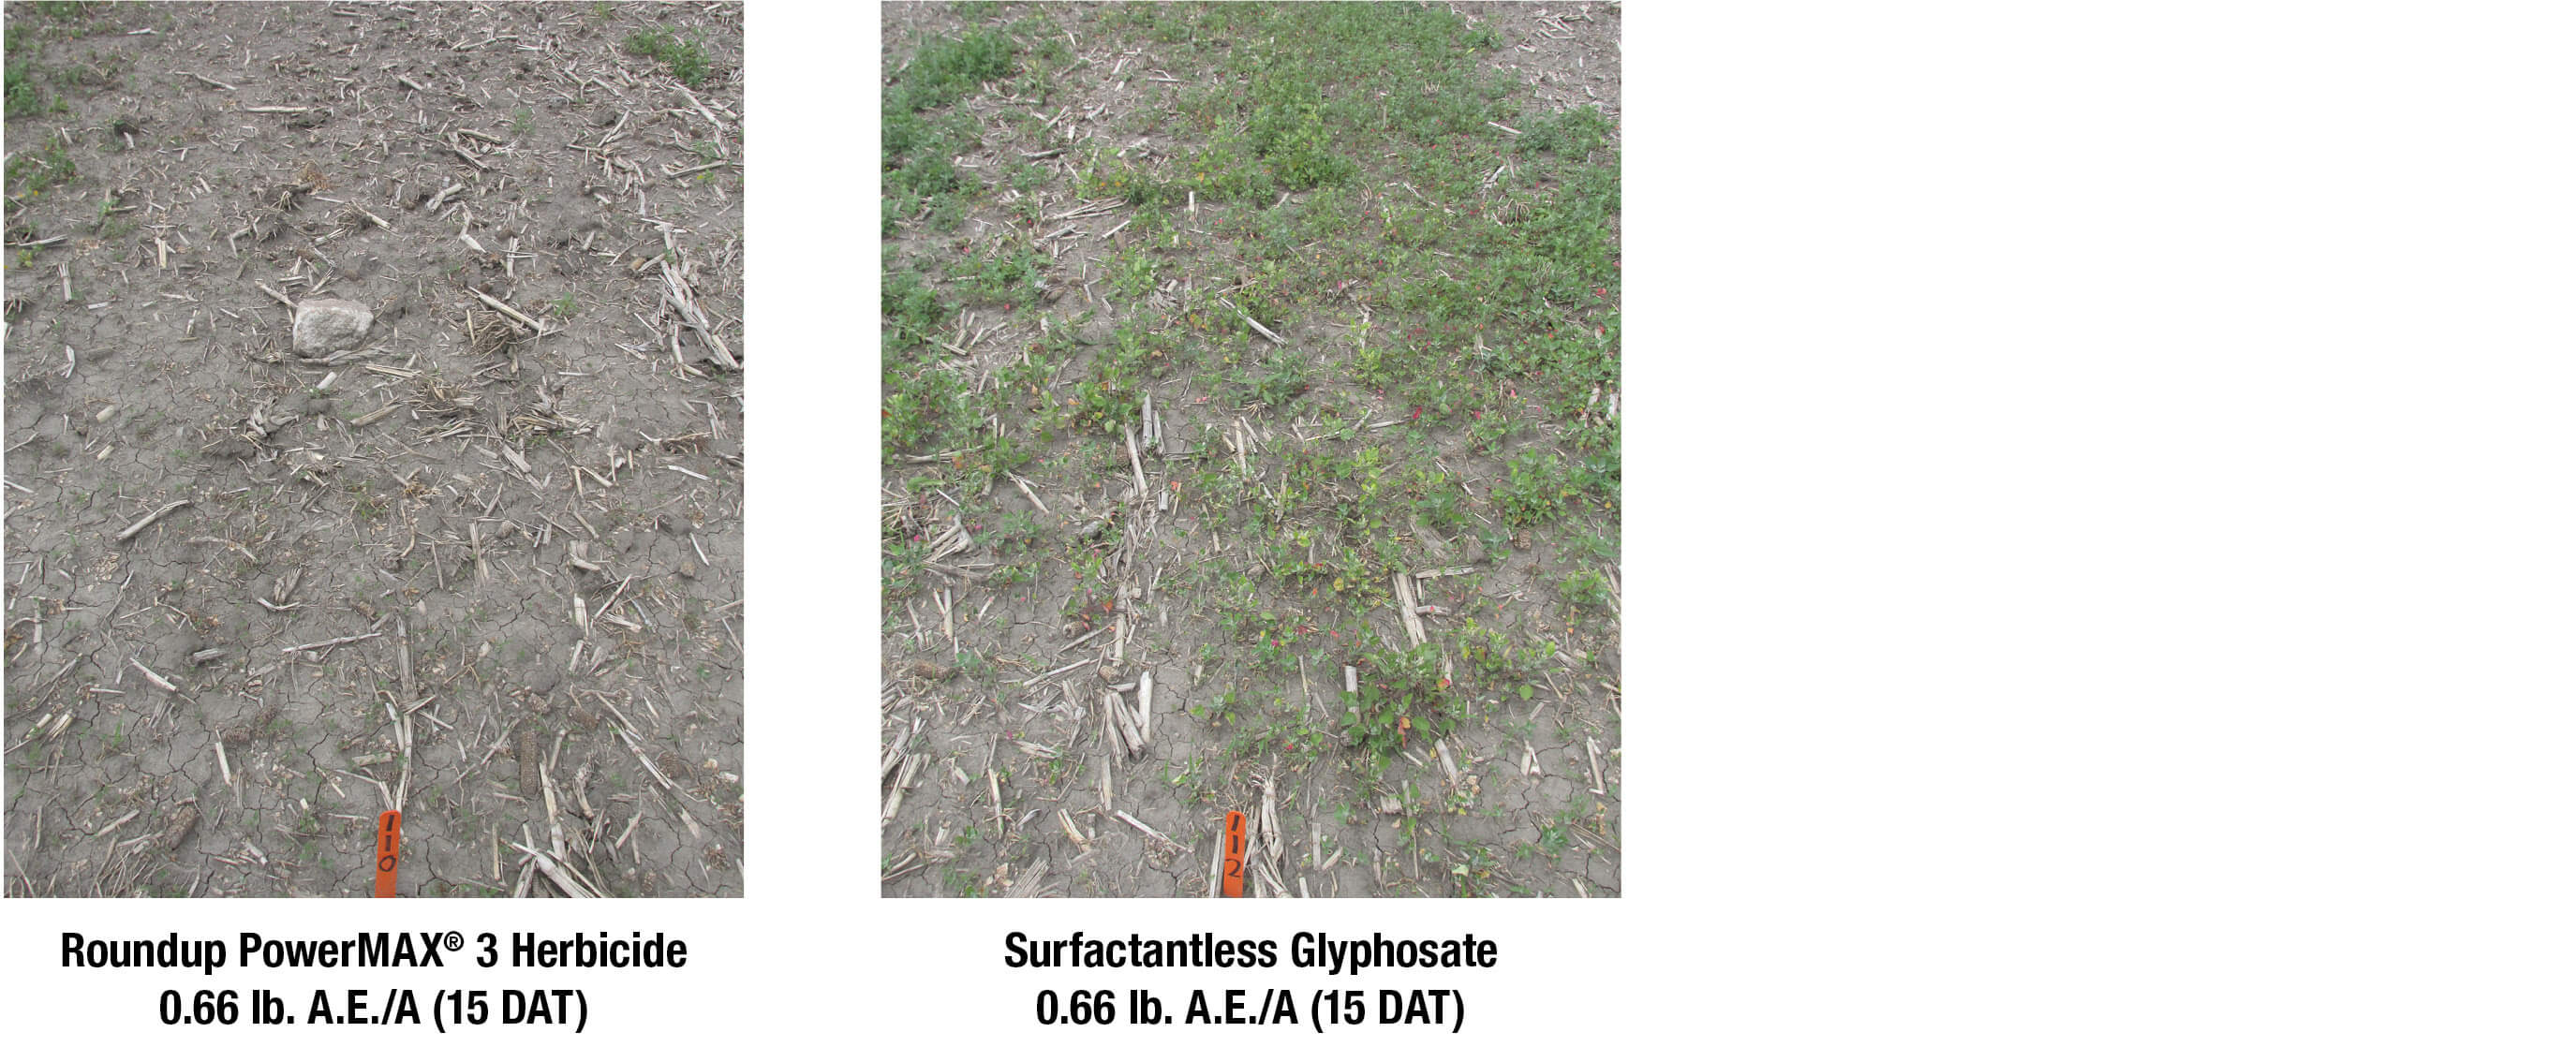 Roundup PowerMAX 3 herbicide surfactants vs. surfactantless glyphosate weed control images